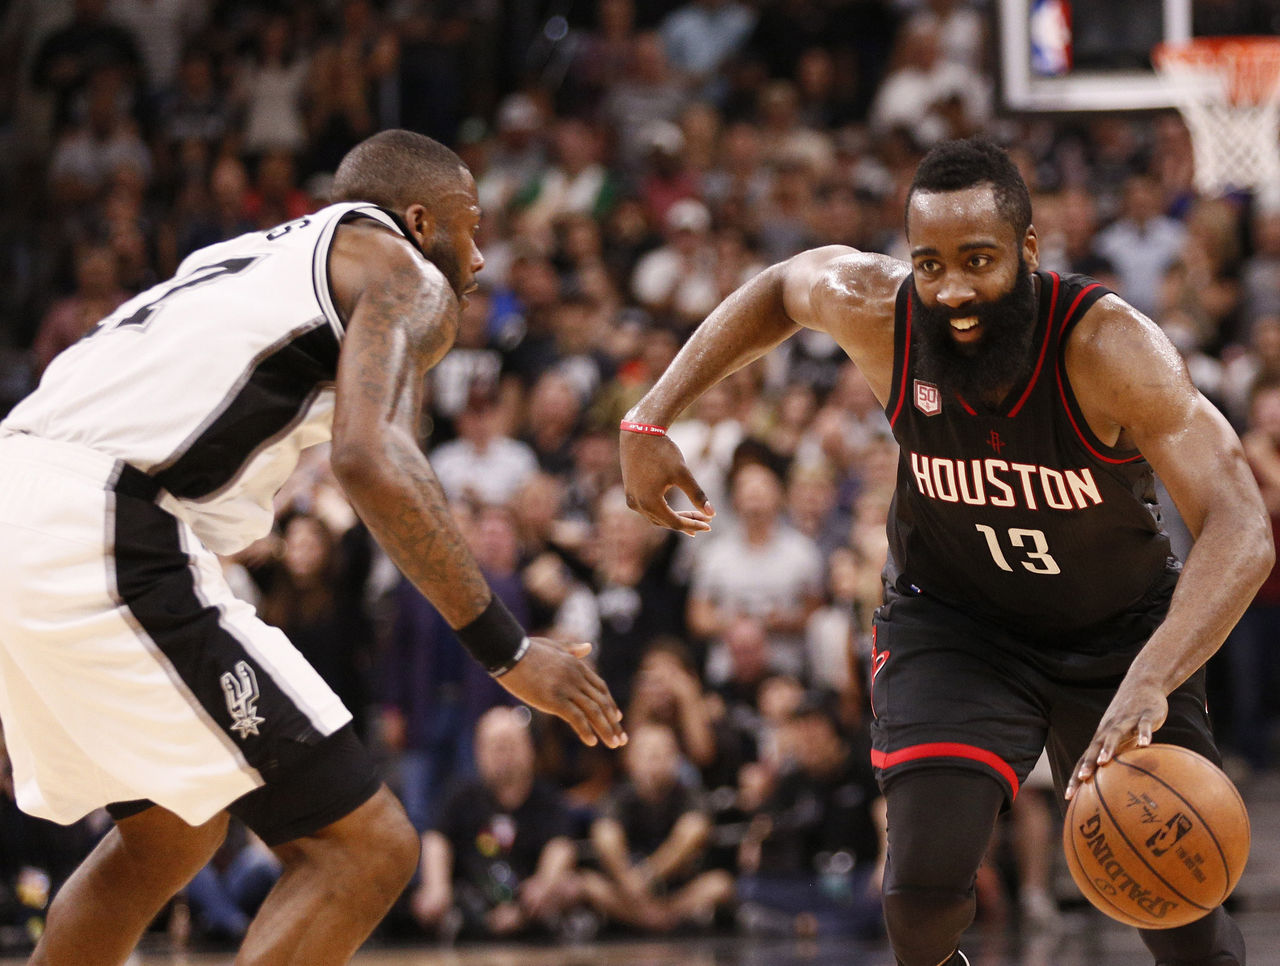 Cropped_2017-05-10t032513z_765759235_nocid_rtrmadp_3_nba-playoffs-houston-rockets-at-san-antonio-spurs